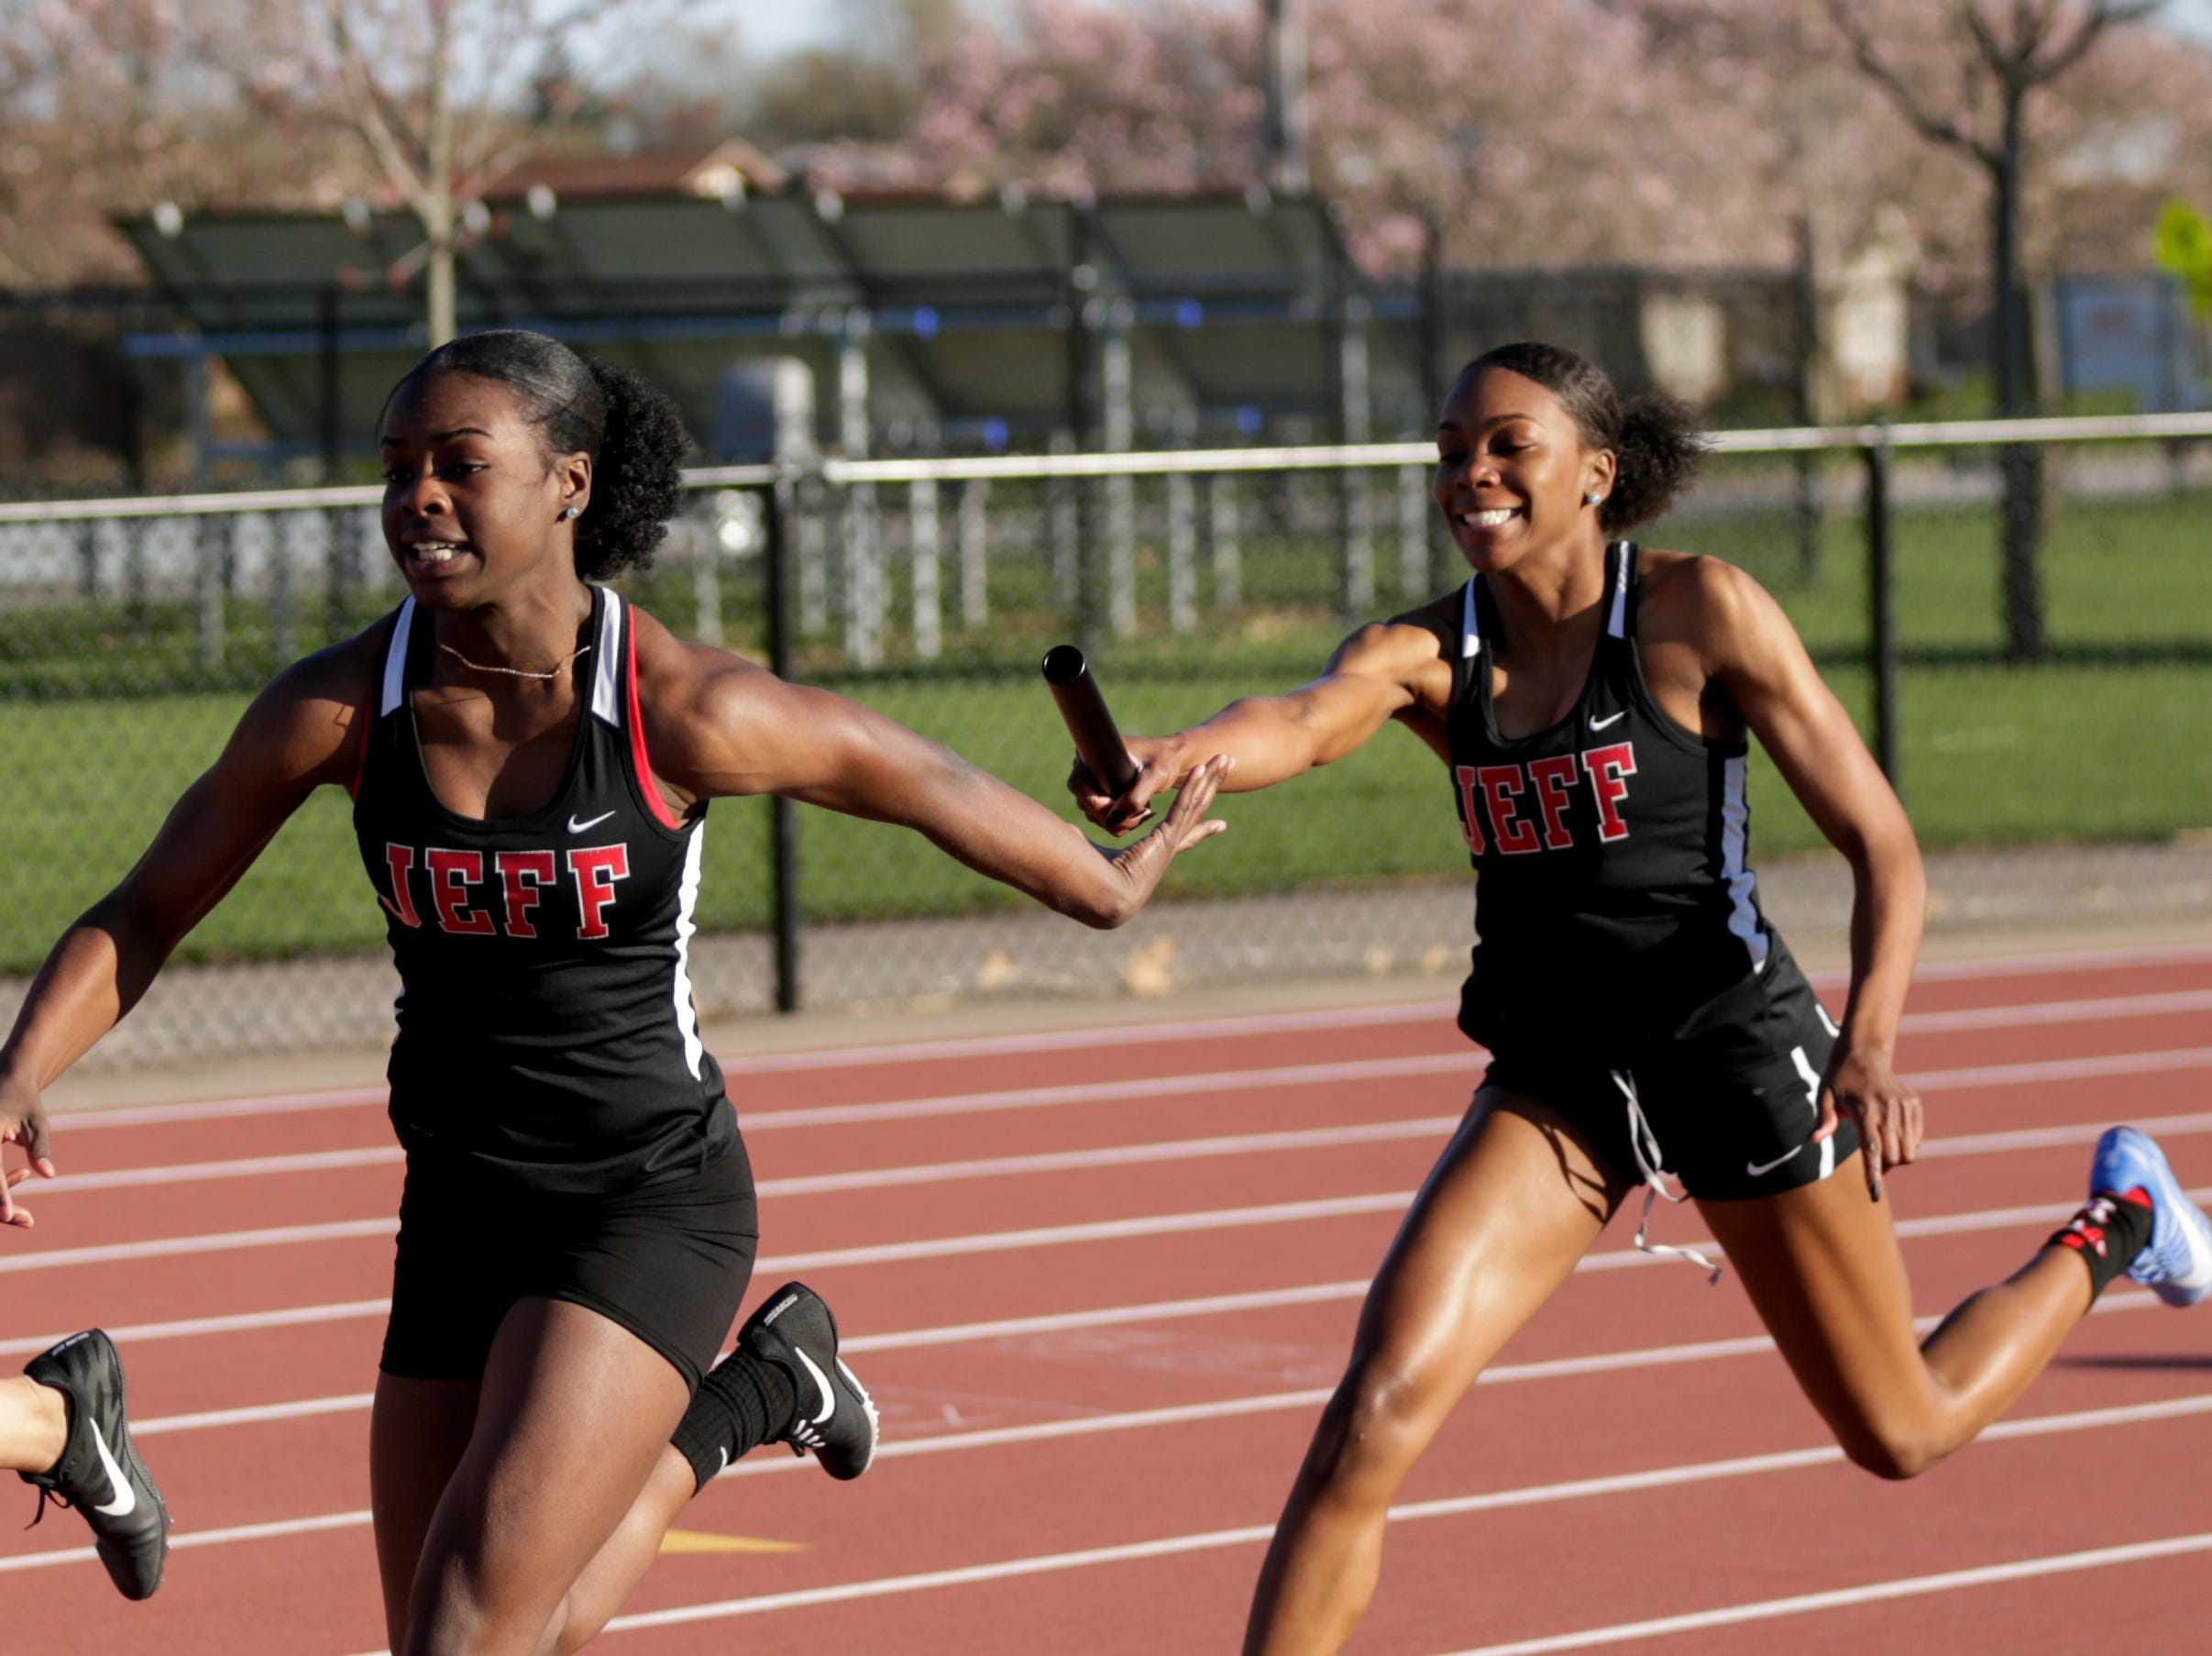 Lafayette Jeff's Kela Haskins hands off the baton to Courtney Beckford as they compete in the women's 4x100 meter relay during the 2019 Sprinters Showcase, Friday, April 12, 2019, at Lafayette Jeff High School in Lafayette.